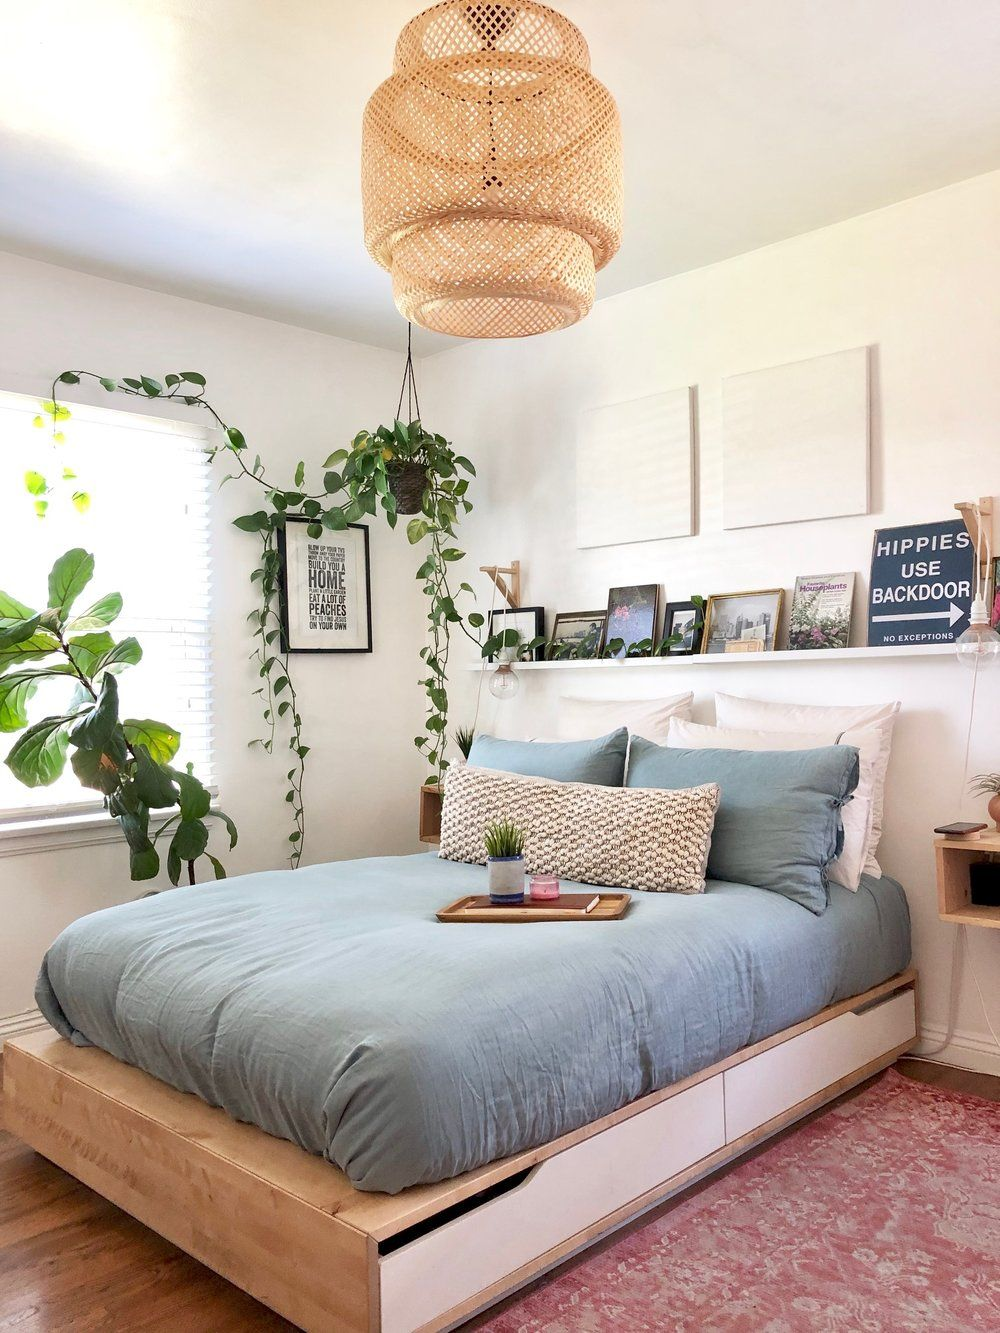 These 10 Bedroom Rug Ideas Will Give Your Floorboards A Fresh New